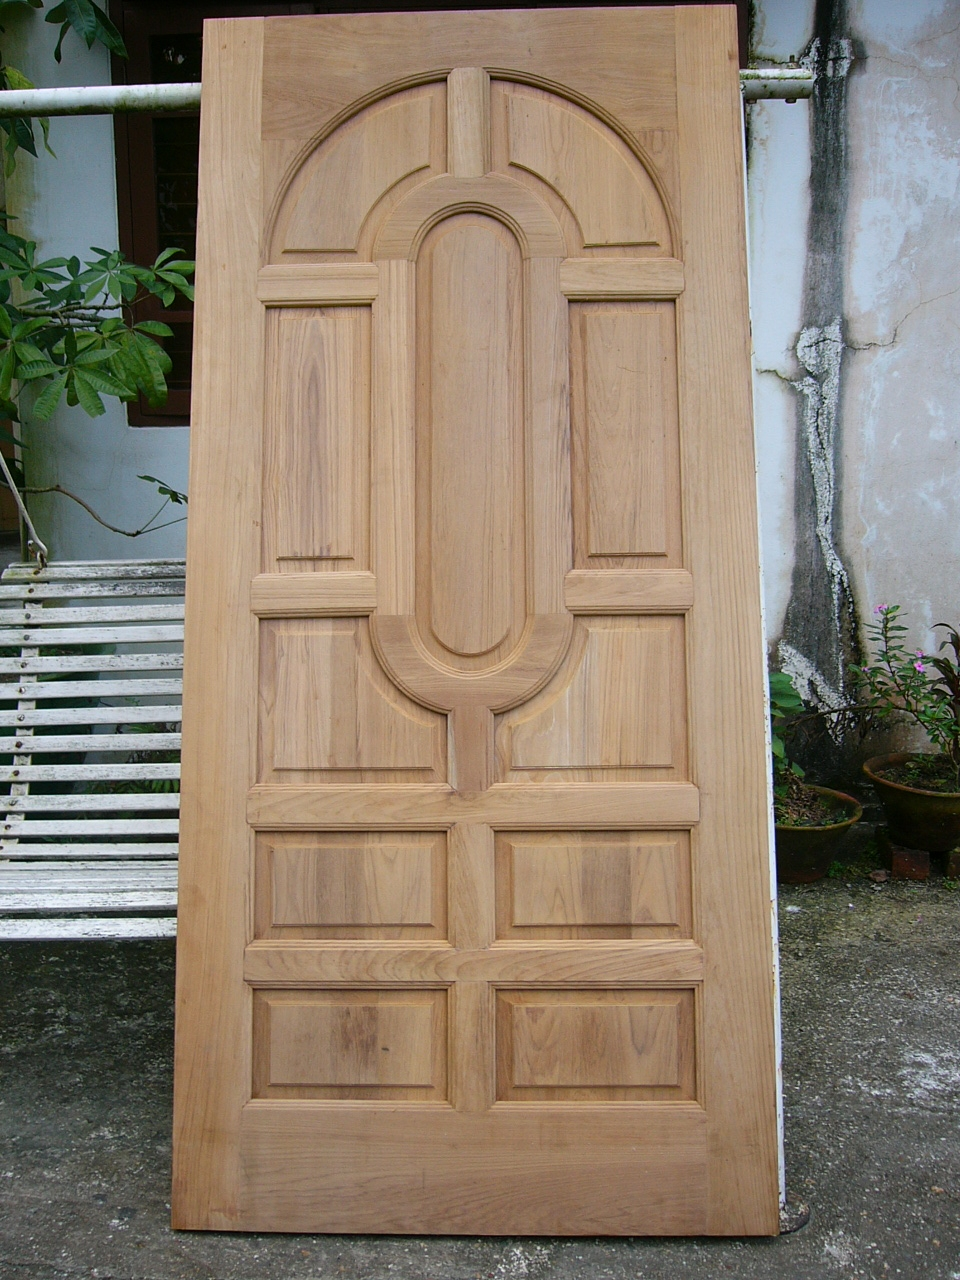 Wood (finished doors, pallets) , food agriculture,